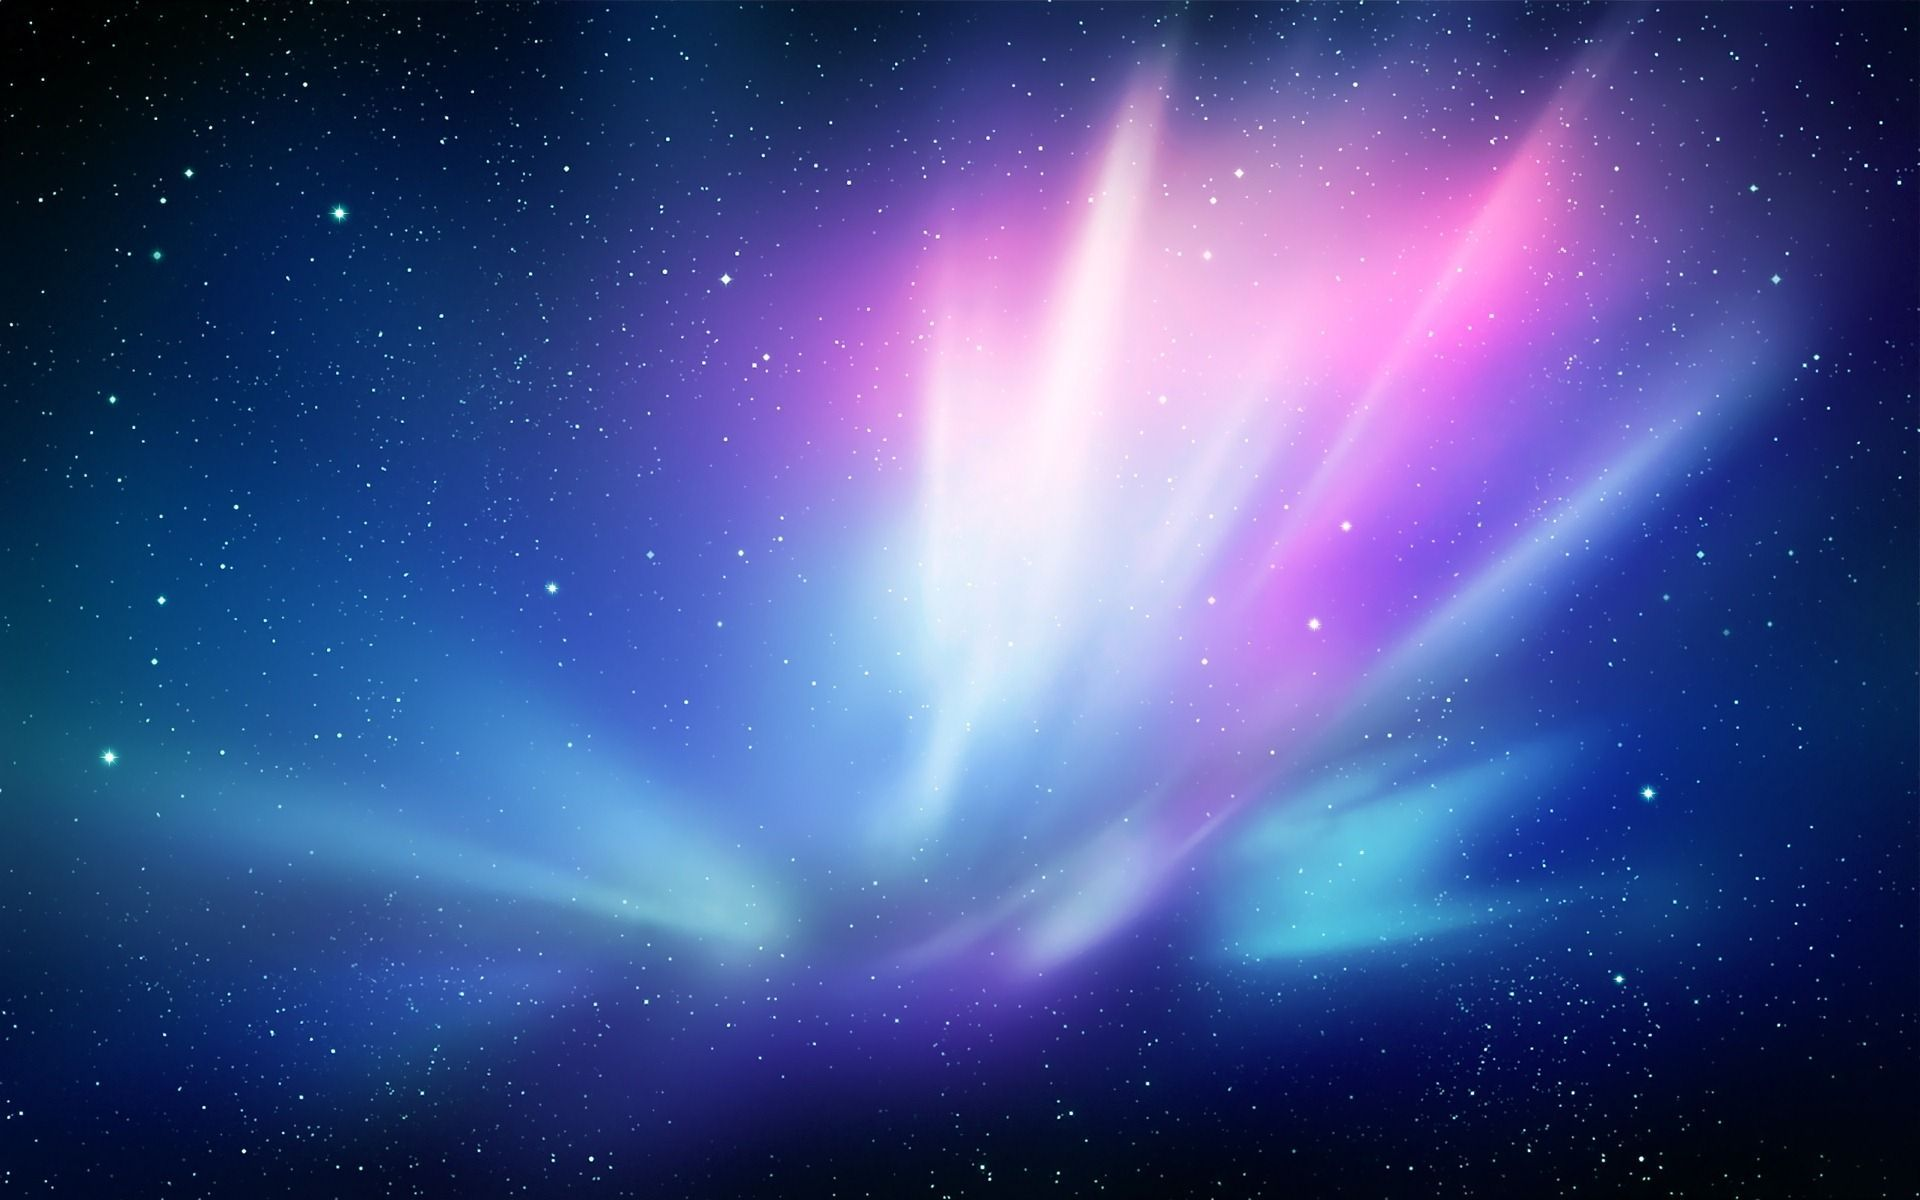 apple macbook background cbru 1920a—1080 wallpaper apple 28 wallpapers adorable wallpapers